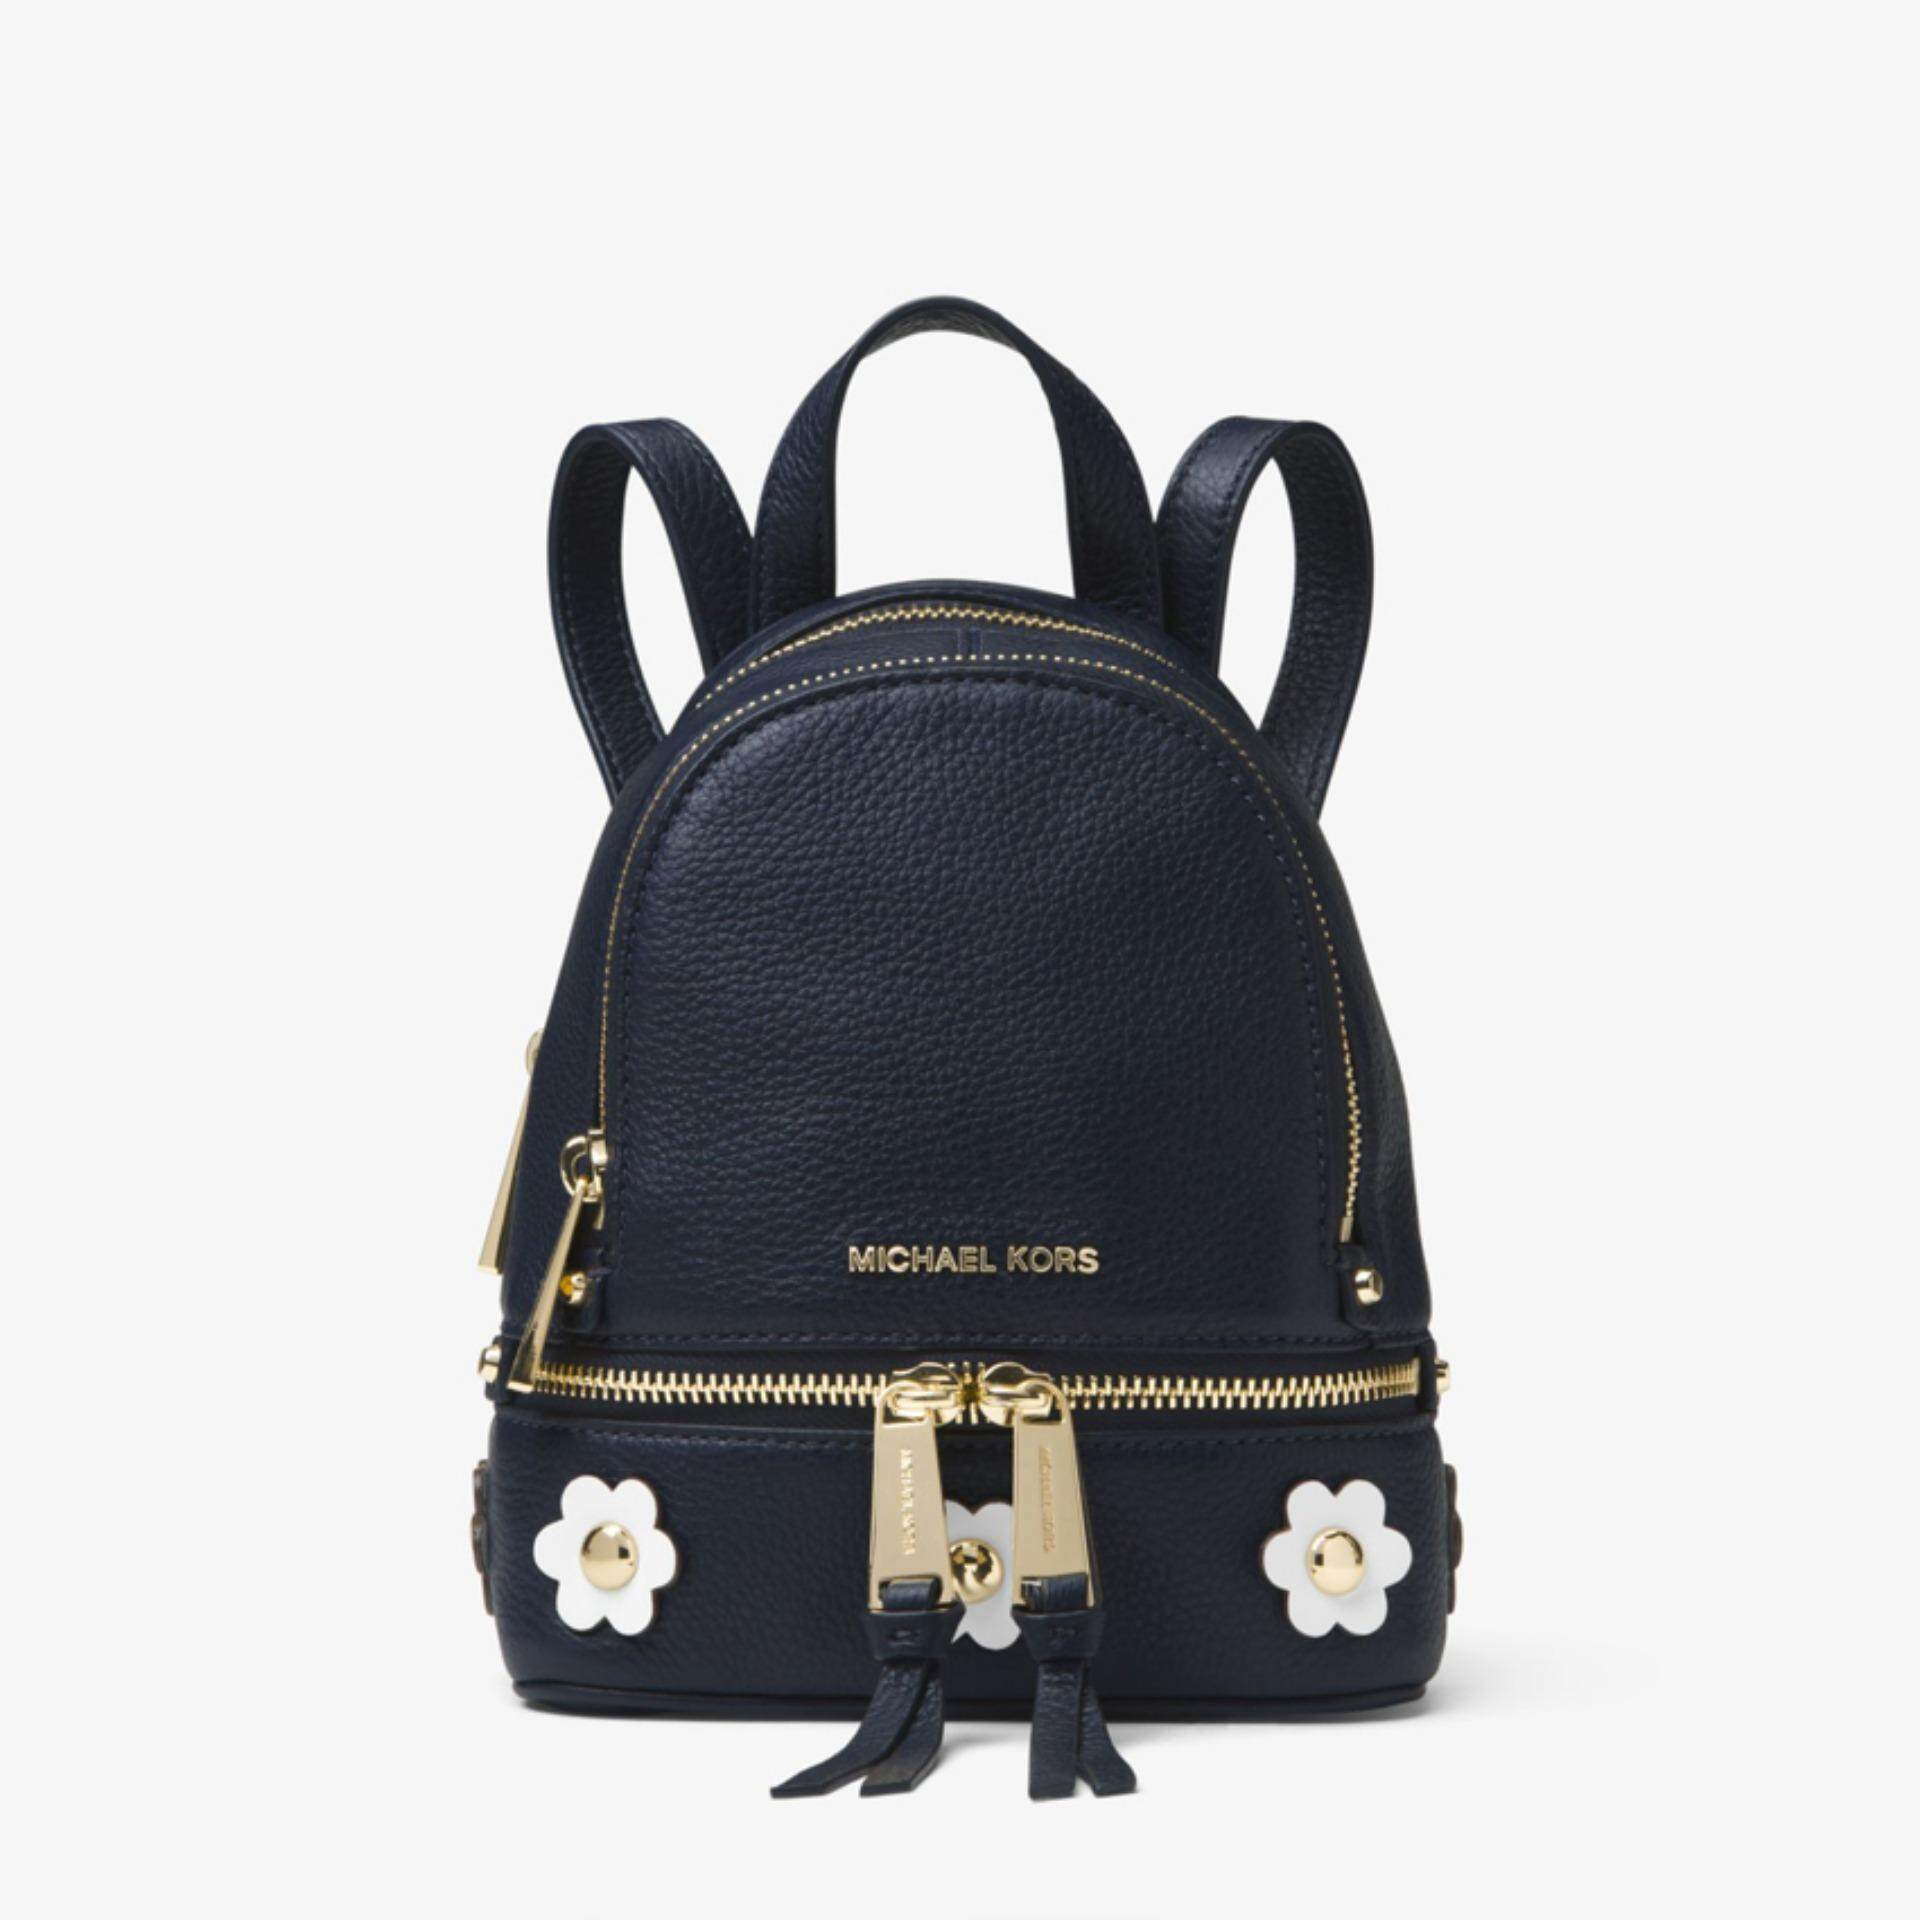 e229cd2de611 Michael Kors Rhea Mini Floral Appliqué Leather Backpack - Navy Blue